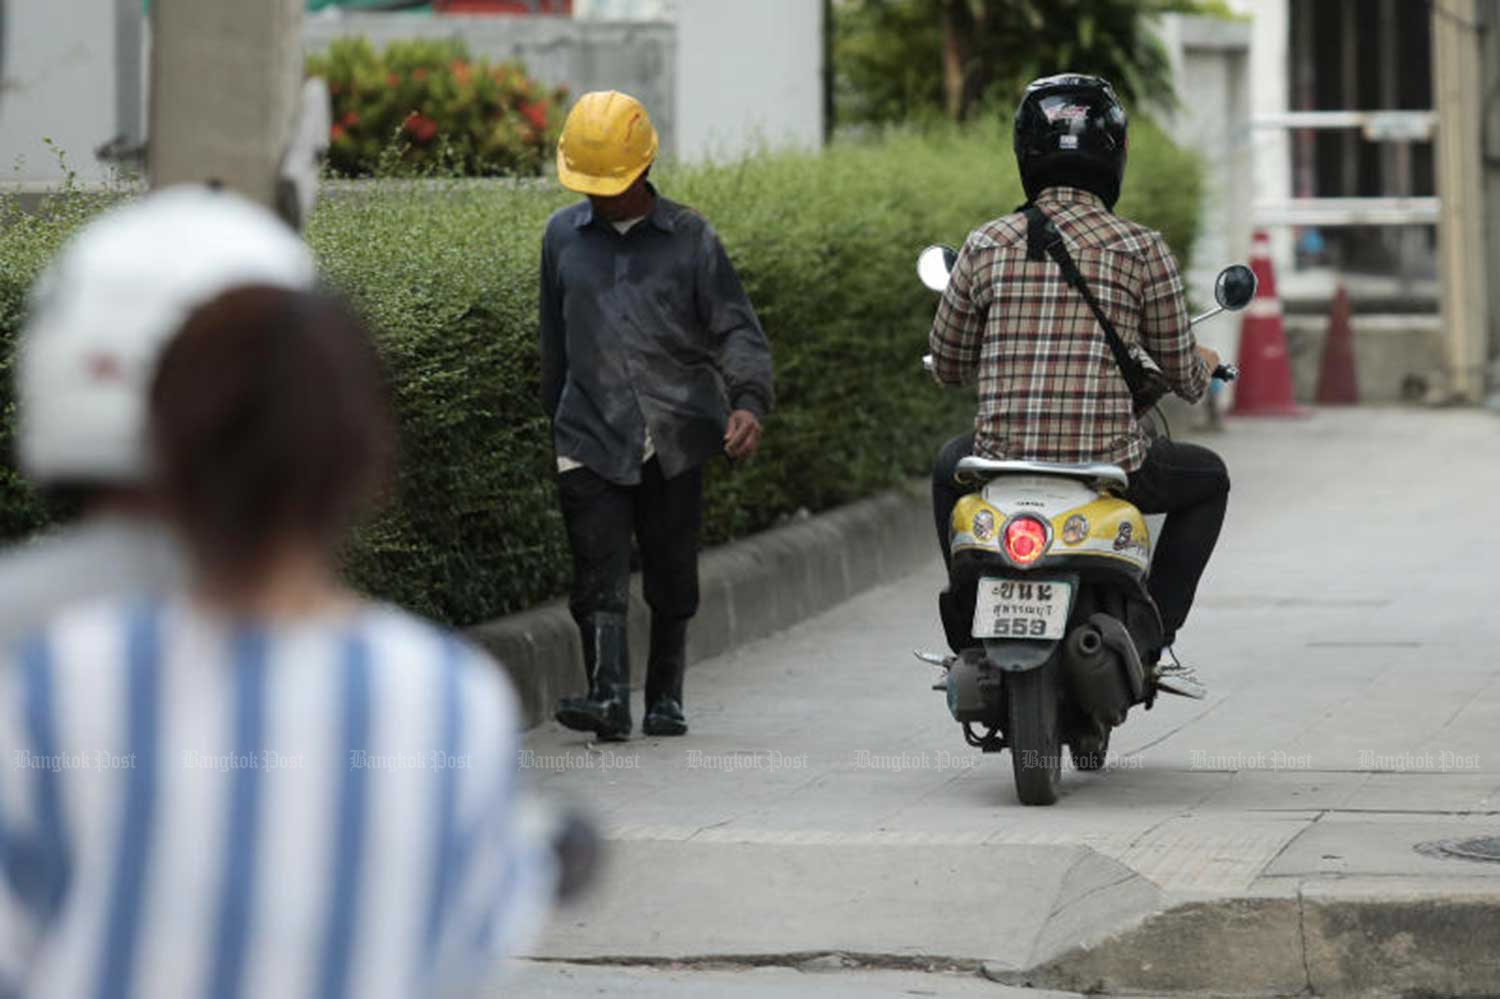 A motorcyclist rides on a footpath near Lamsalee intersection, a traffic hotspot in the Ramkhamhaeng area, to avoid congestion on Ramkhamhaeng Road. City Hal has collected more than 21.5 million baht in fines from thousands of motorcycle riders who ignored laws and rode on pavements. (File photo)